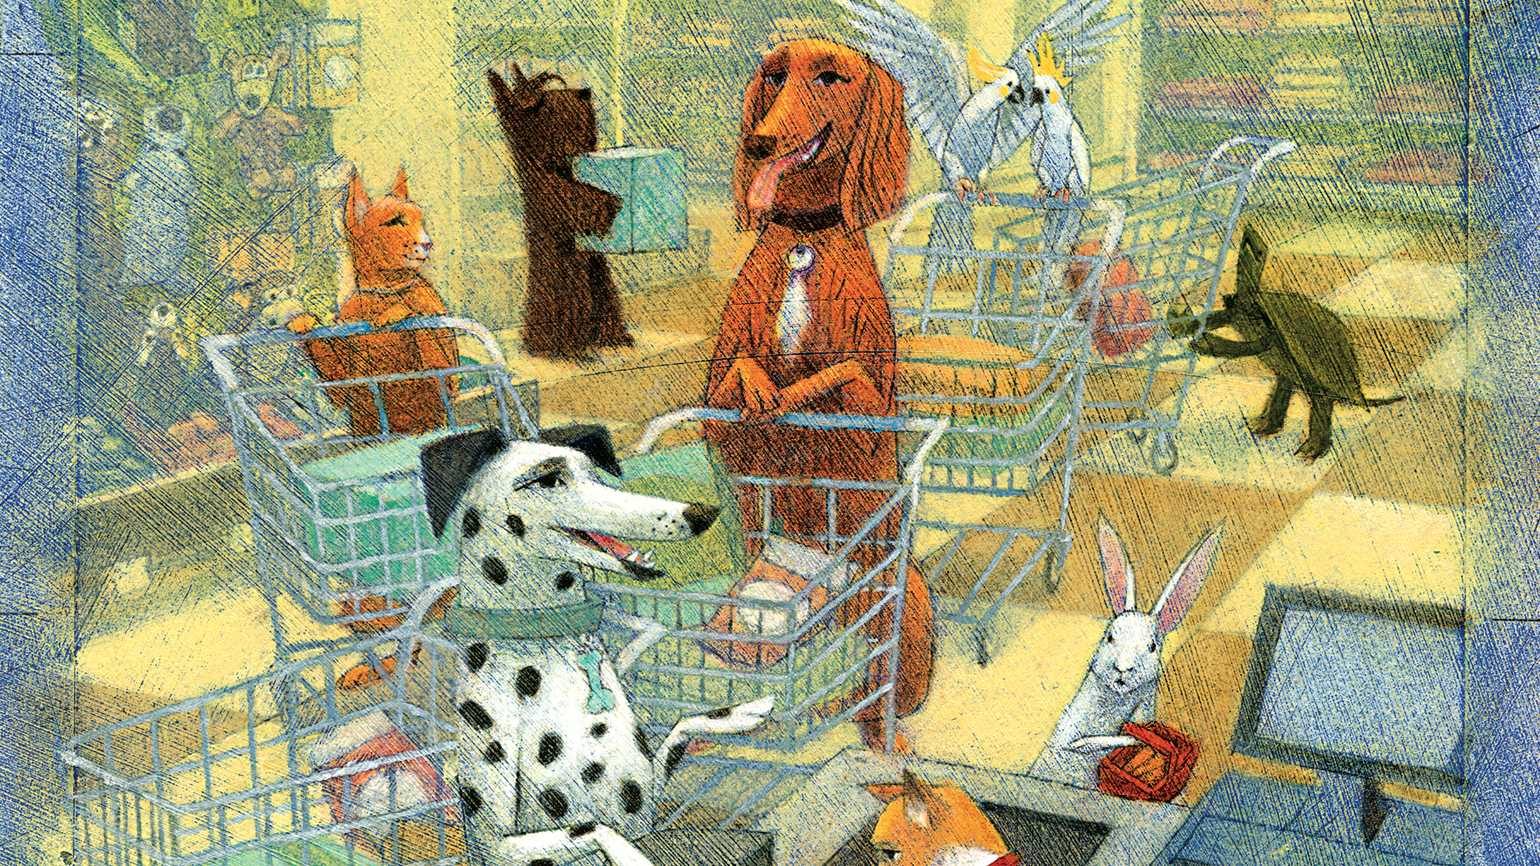 An illustration of various domestic pets shopping with grocery carts in a supermarket.